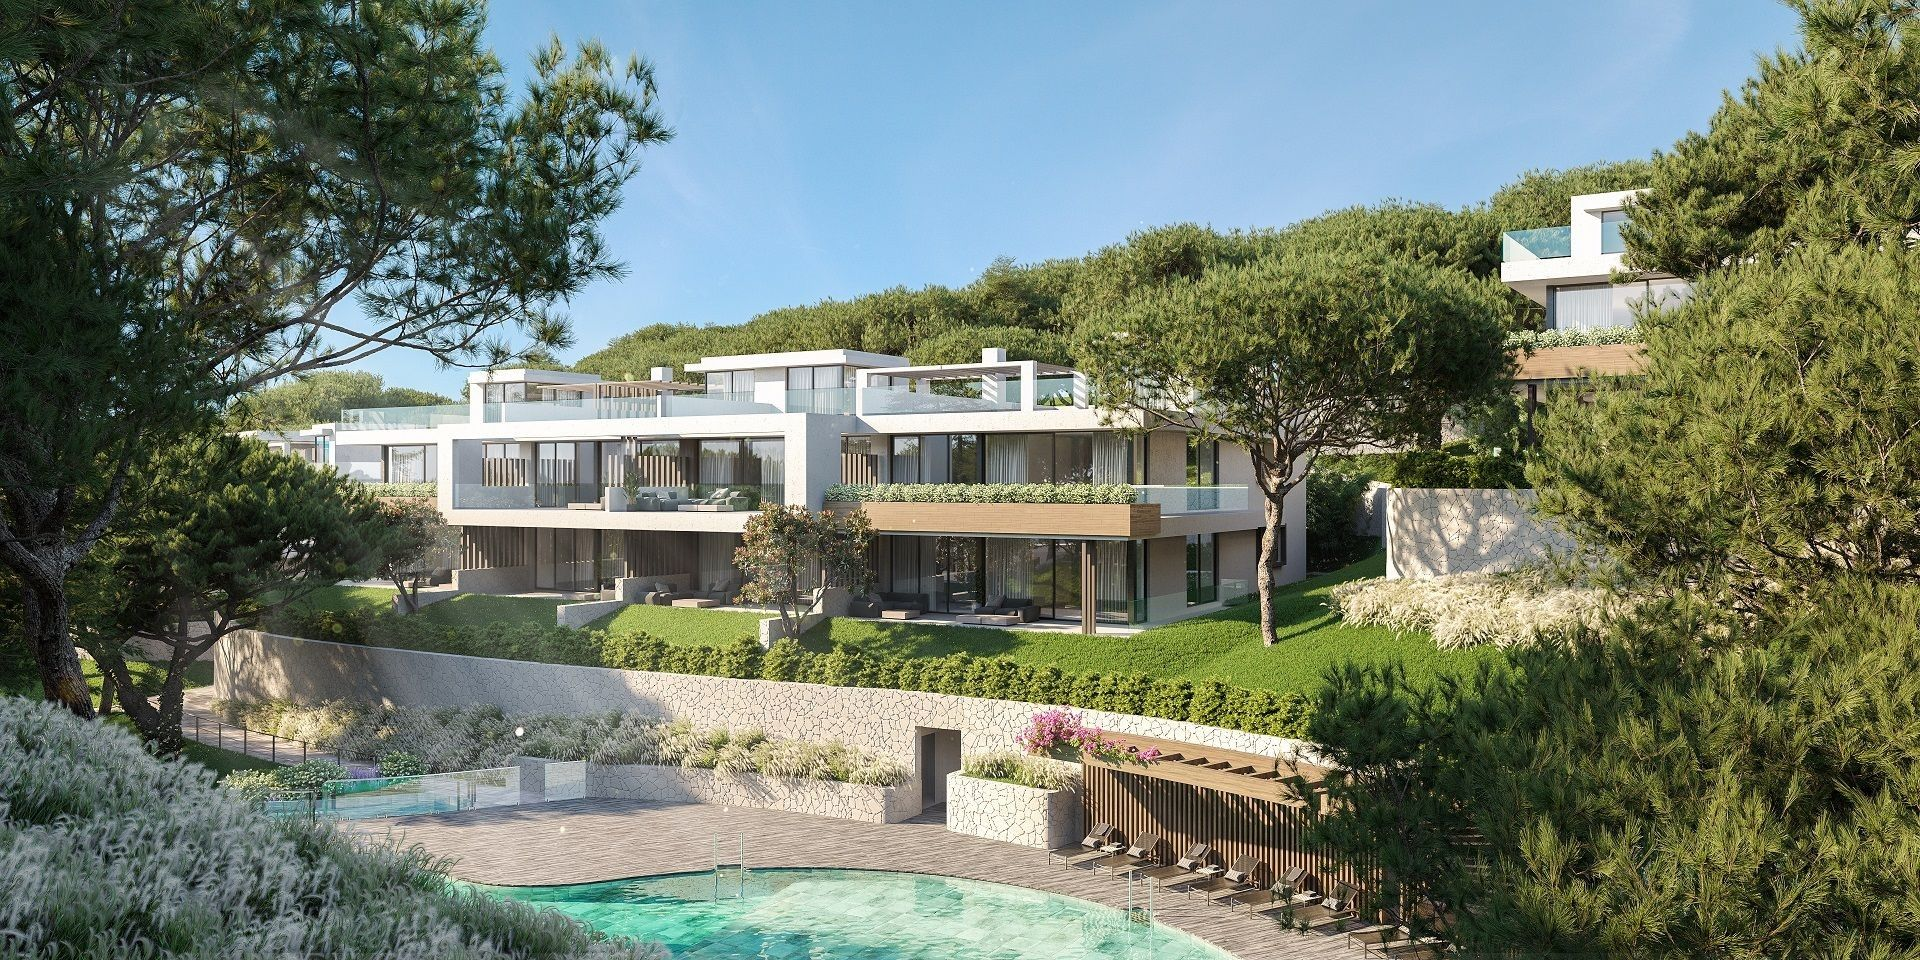 Venere Residences, Cabopino, Marbella East, Marbella - A Boutique Development of 44 Luxury Apartments & Penthouses | Christie's International Real Estate